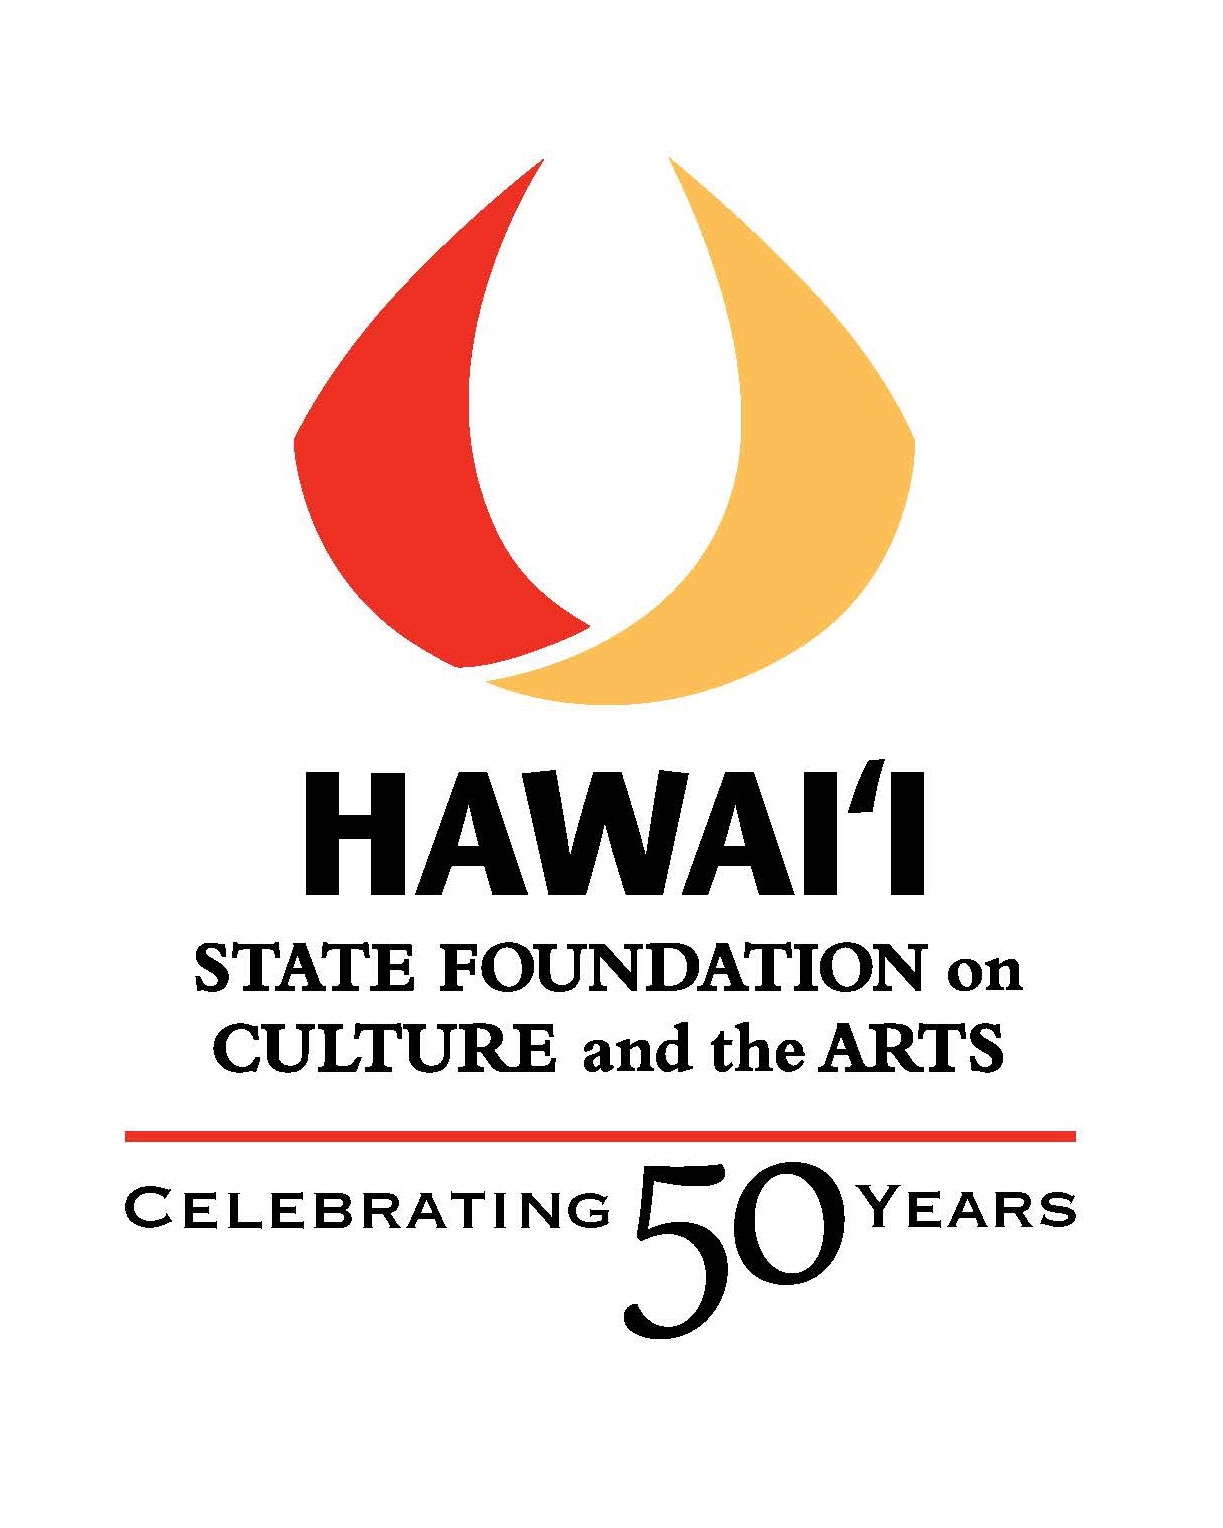 Hawaii culture and the arts